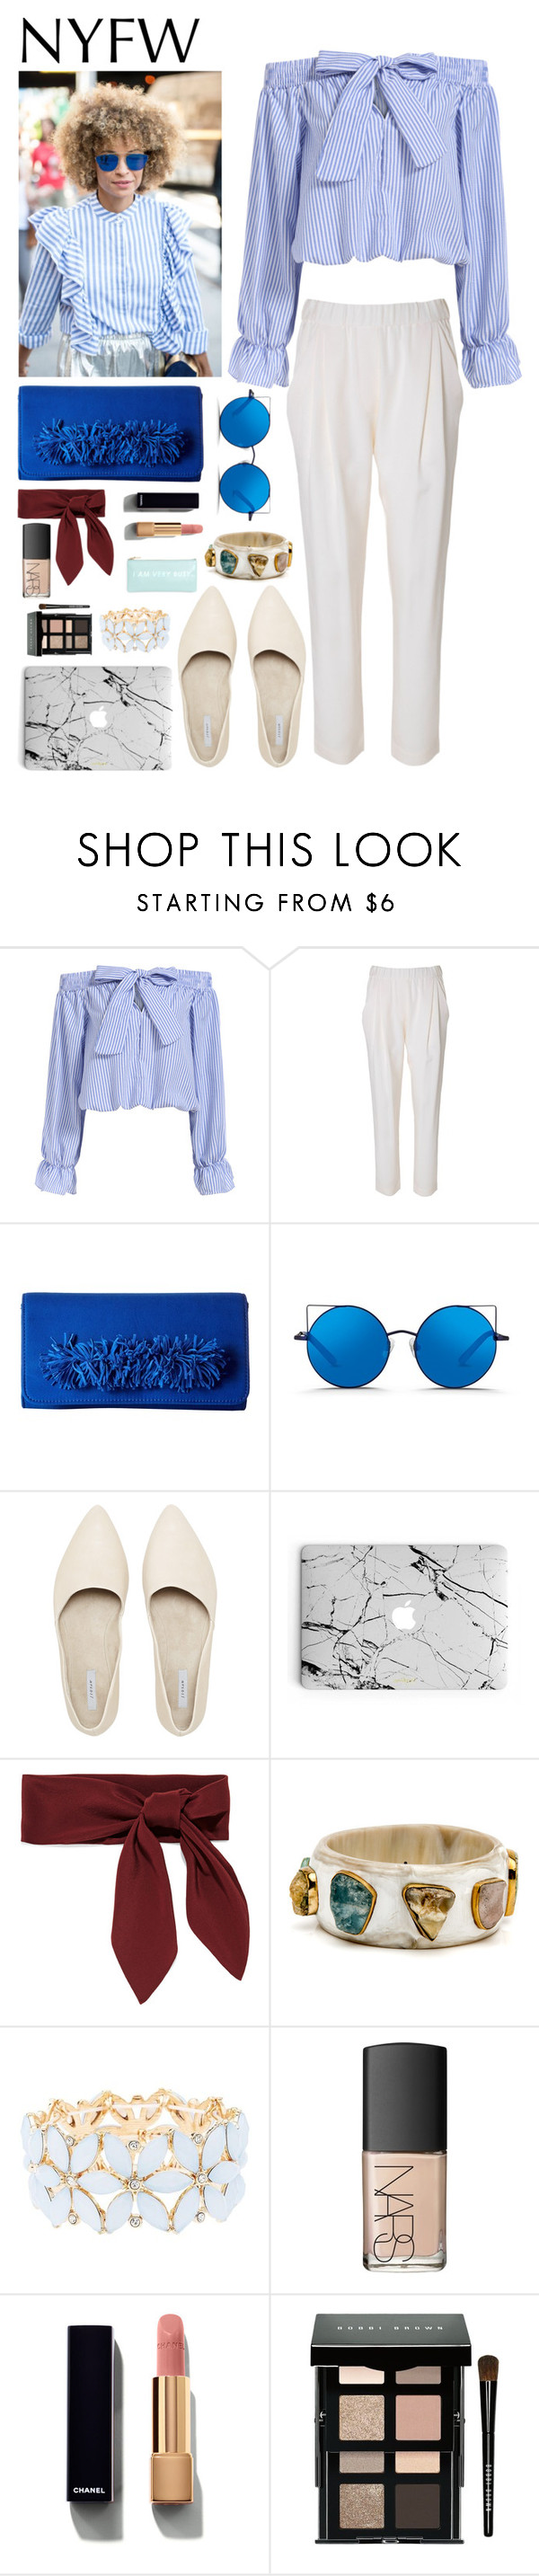 """Untitled #366"" by savkcollins ❤ liked on Polyvore featuring 3.1 Phillip Lim, Steve Madden, Matthew Williamson, Chloé, Charlotte Russe, NARS Cosmetics, Chanel, Bobbi Brown Cosmetics and ban.do"